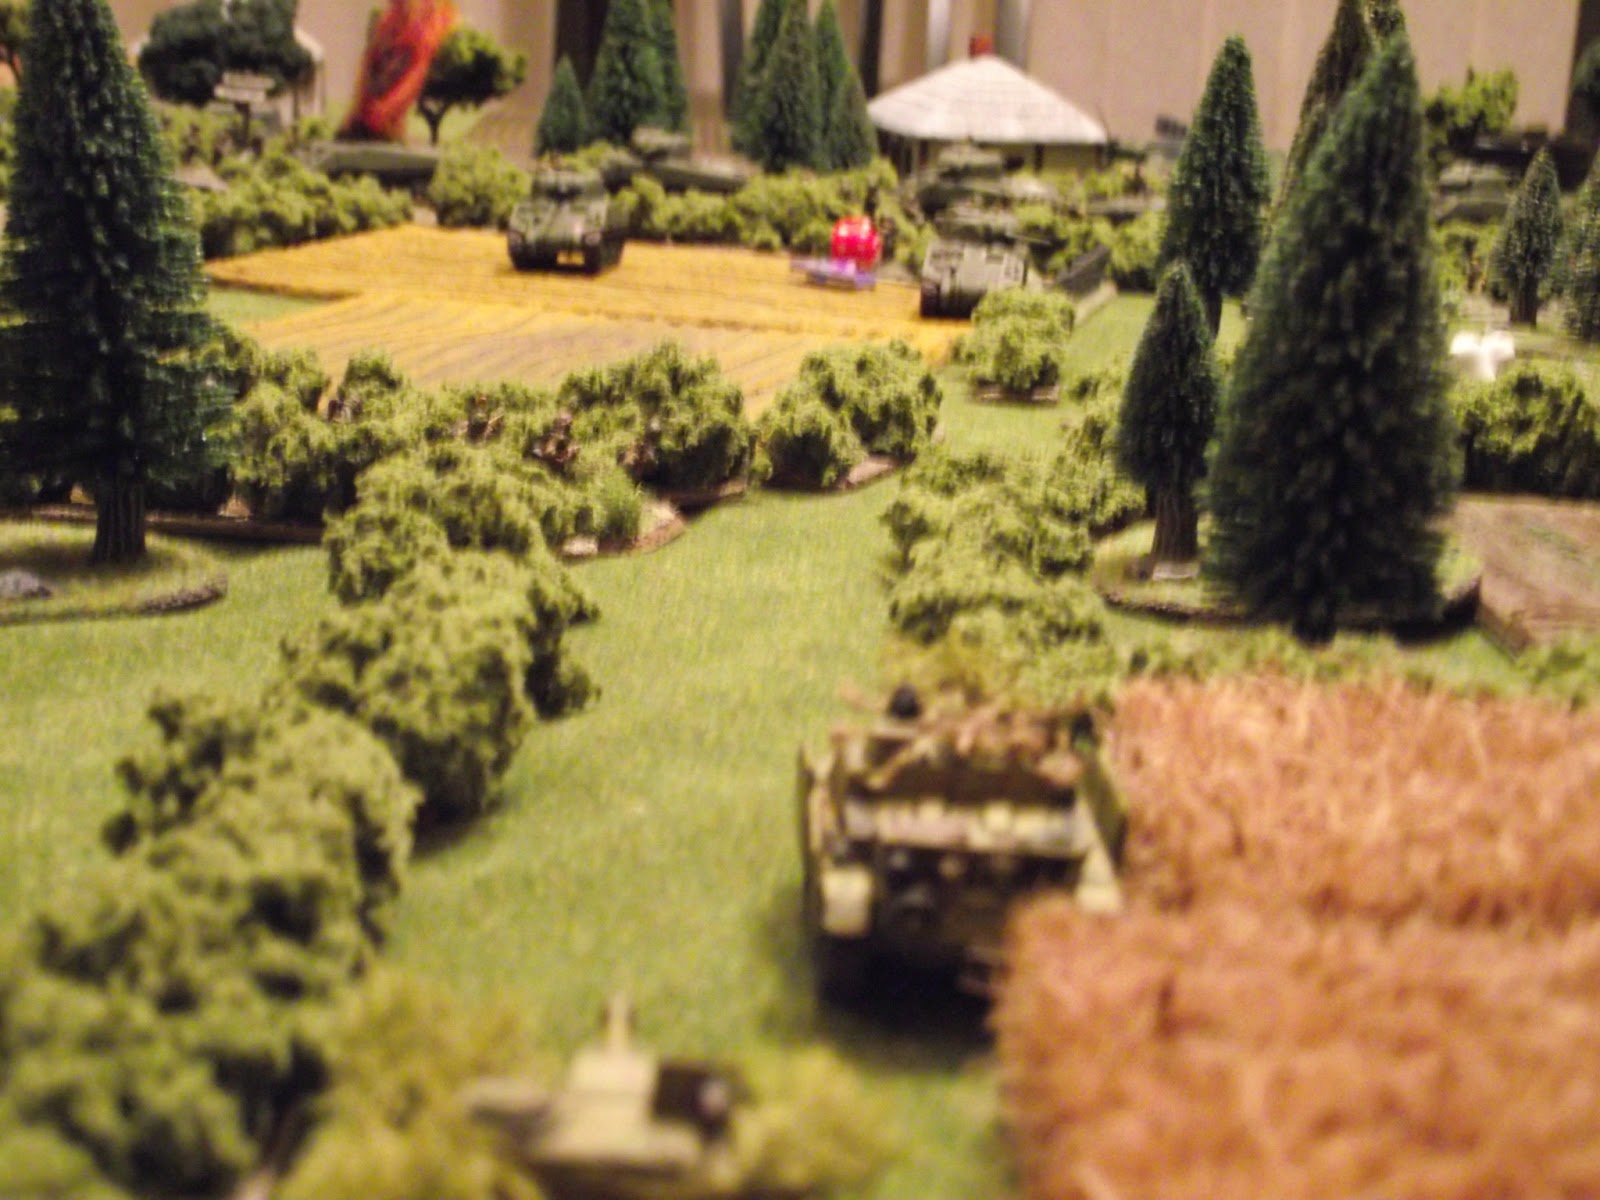 StuG's exchanging fire with 2 Shermans. We managed a couple of hits each, but no major damage done.